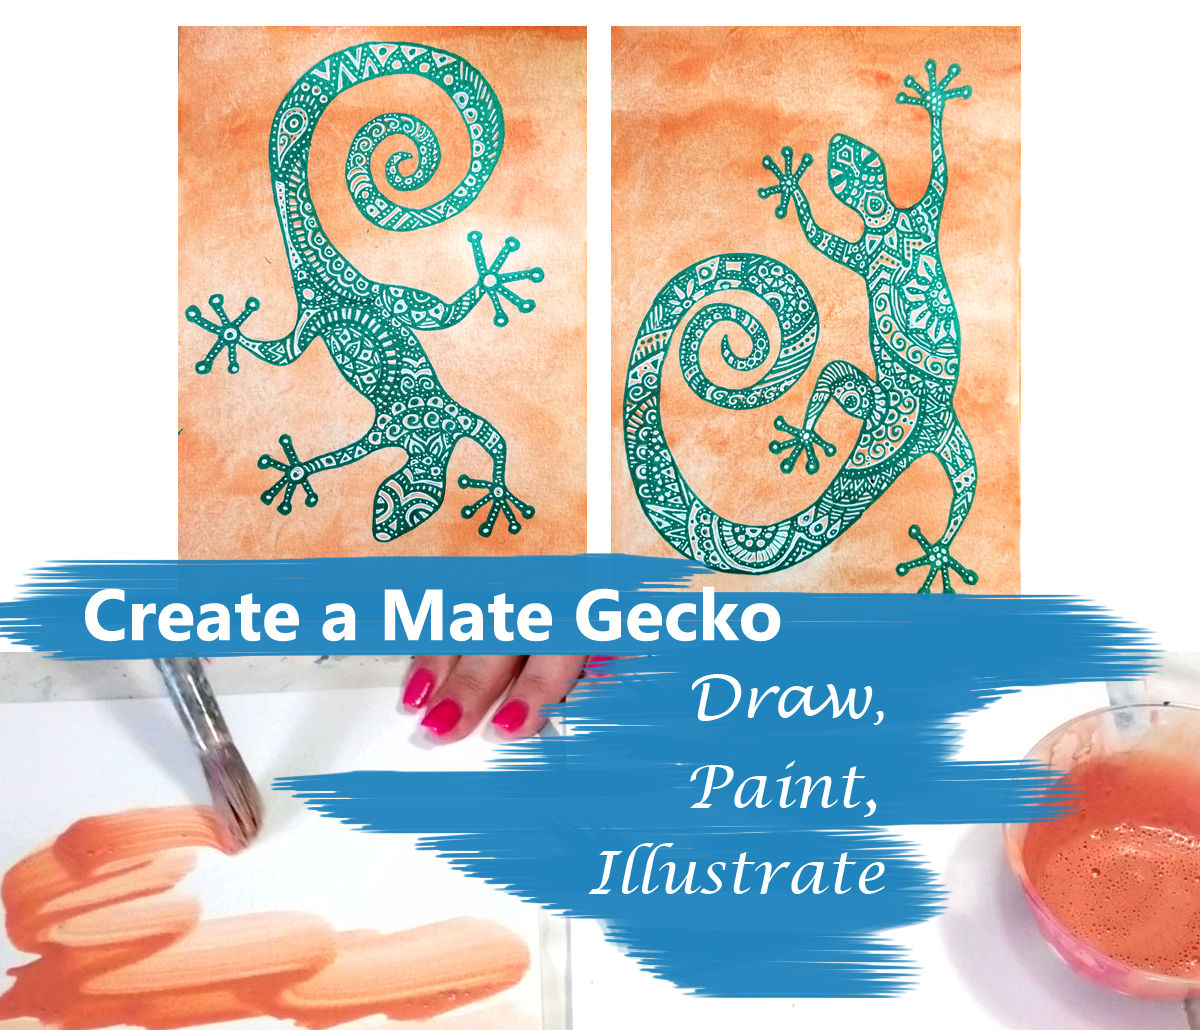 GeckoIntro.png